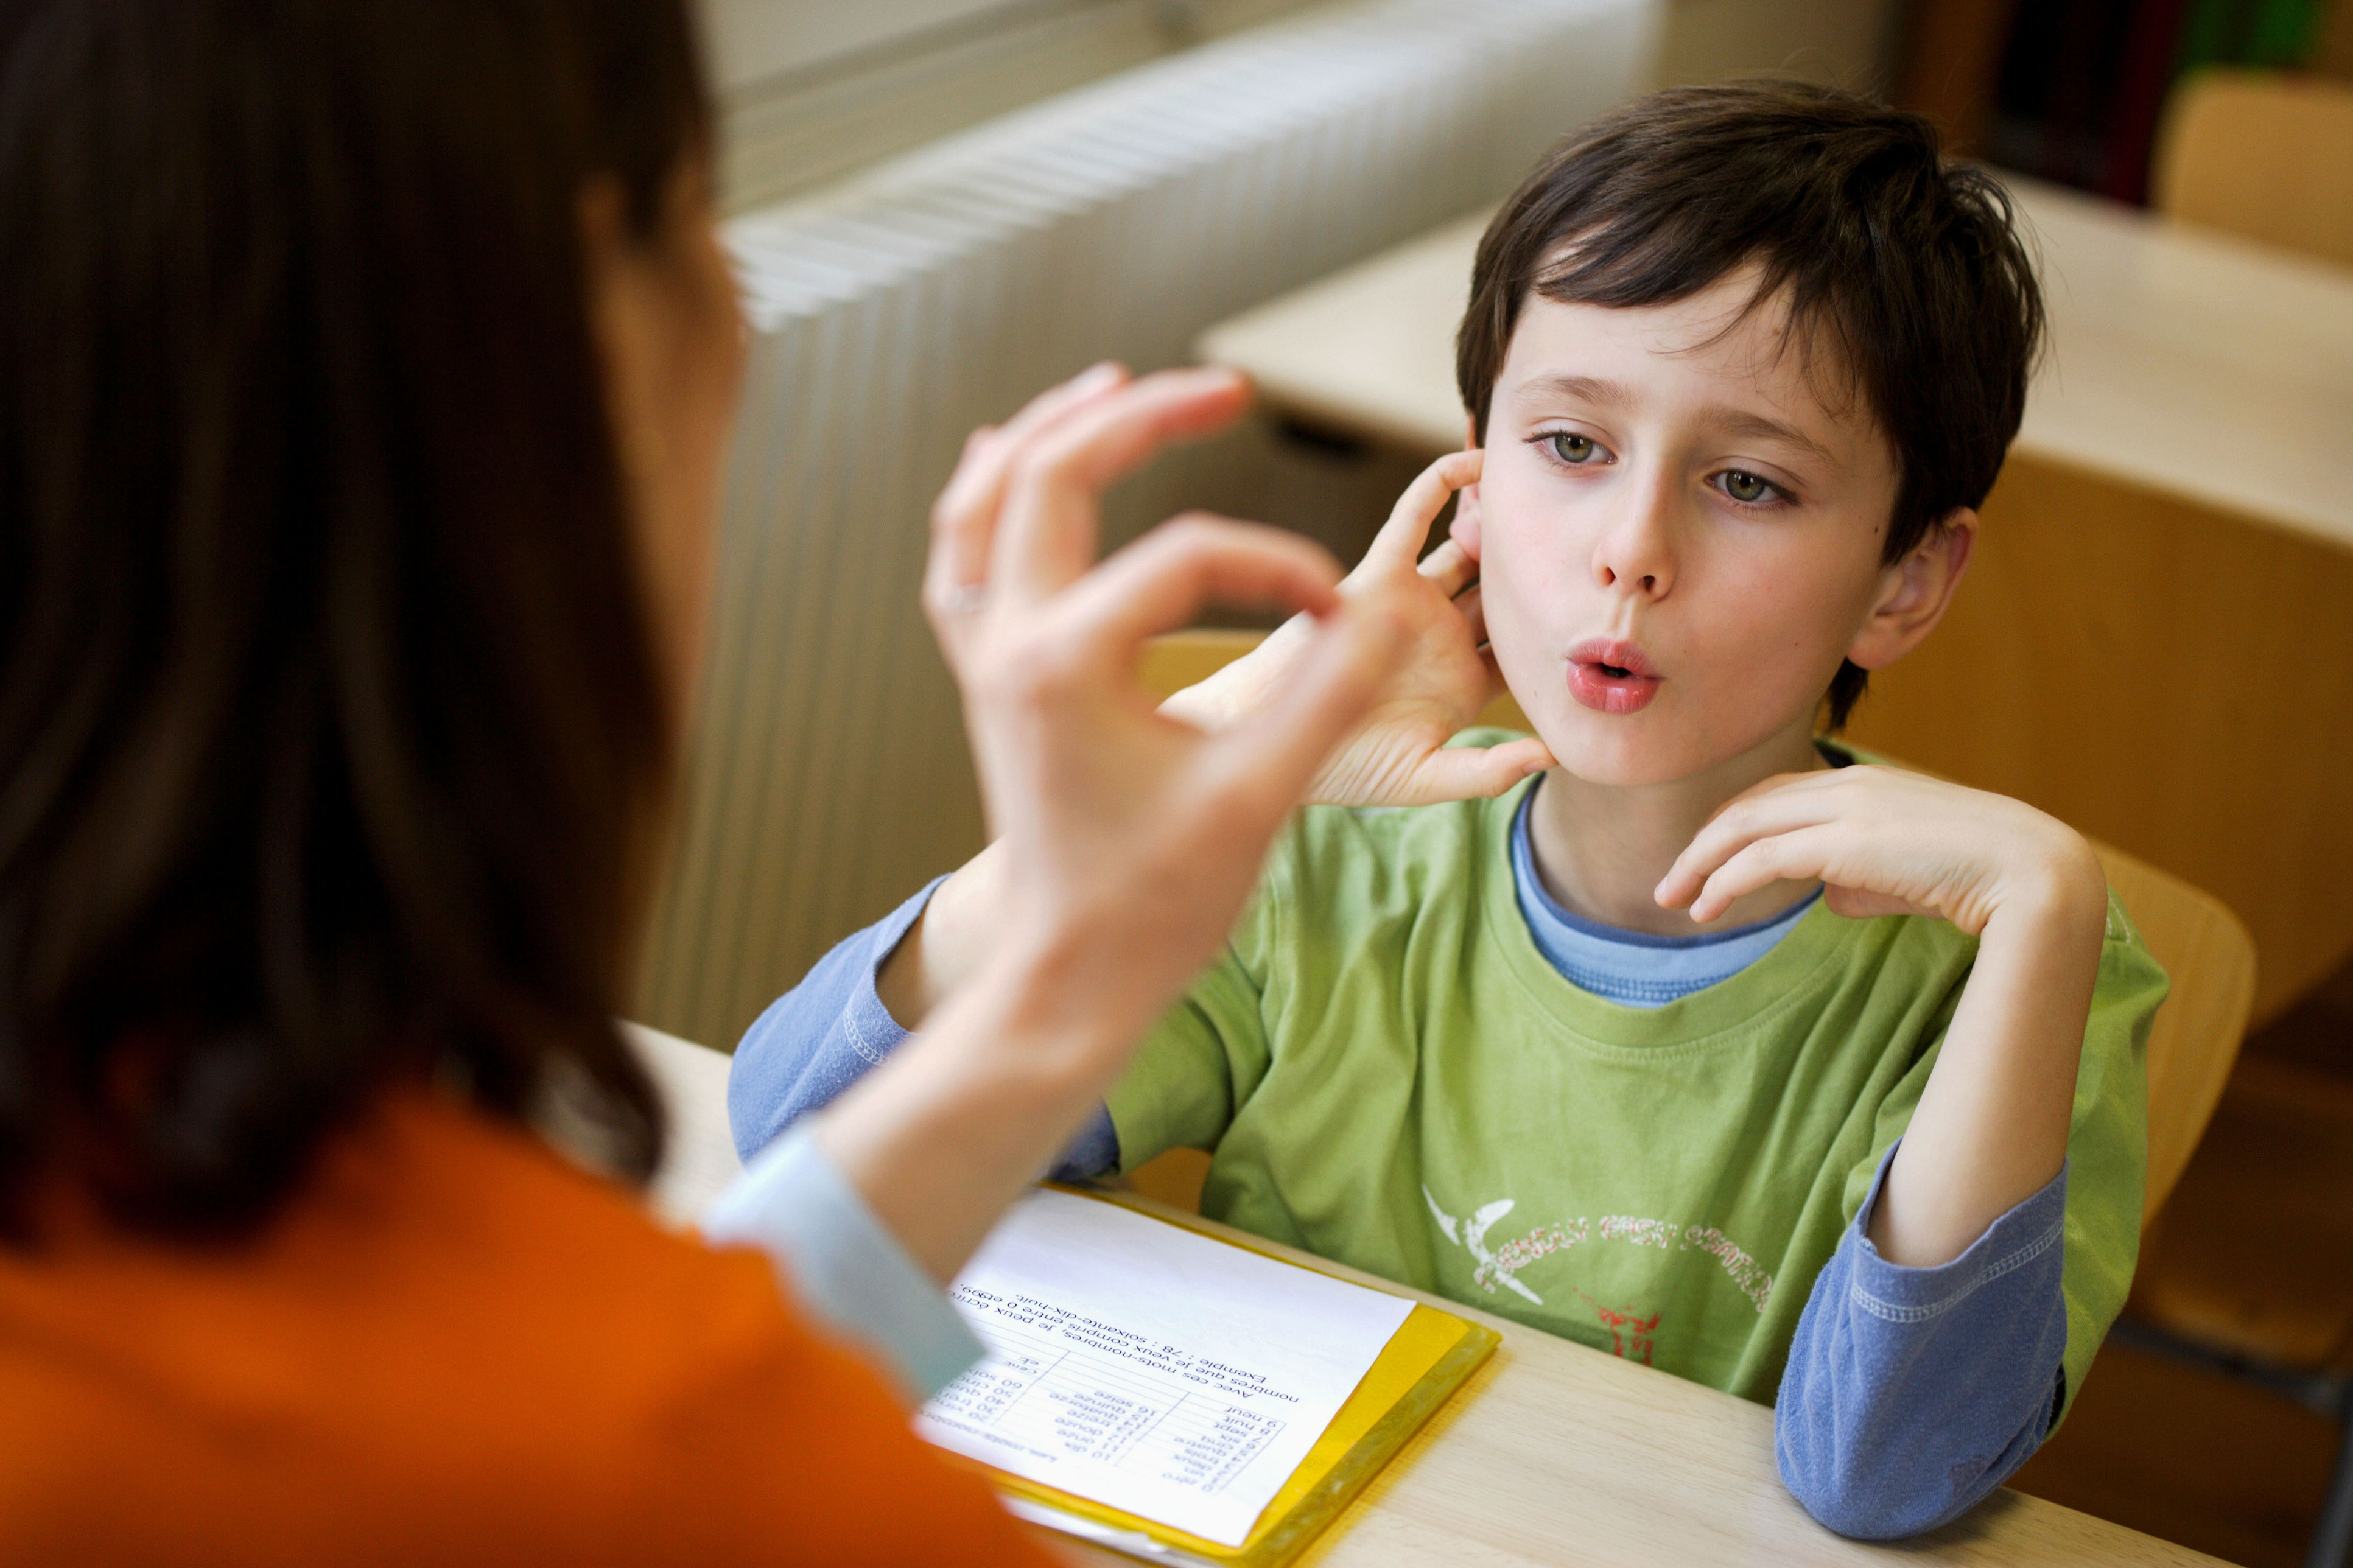 How To Find A Speech Therapist For Your Autistic Child